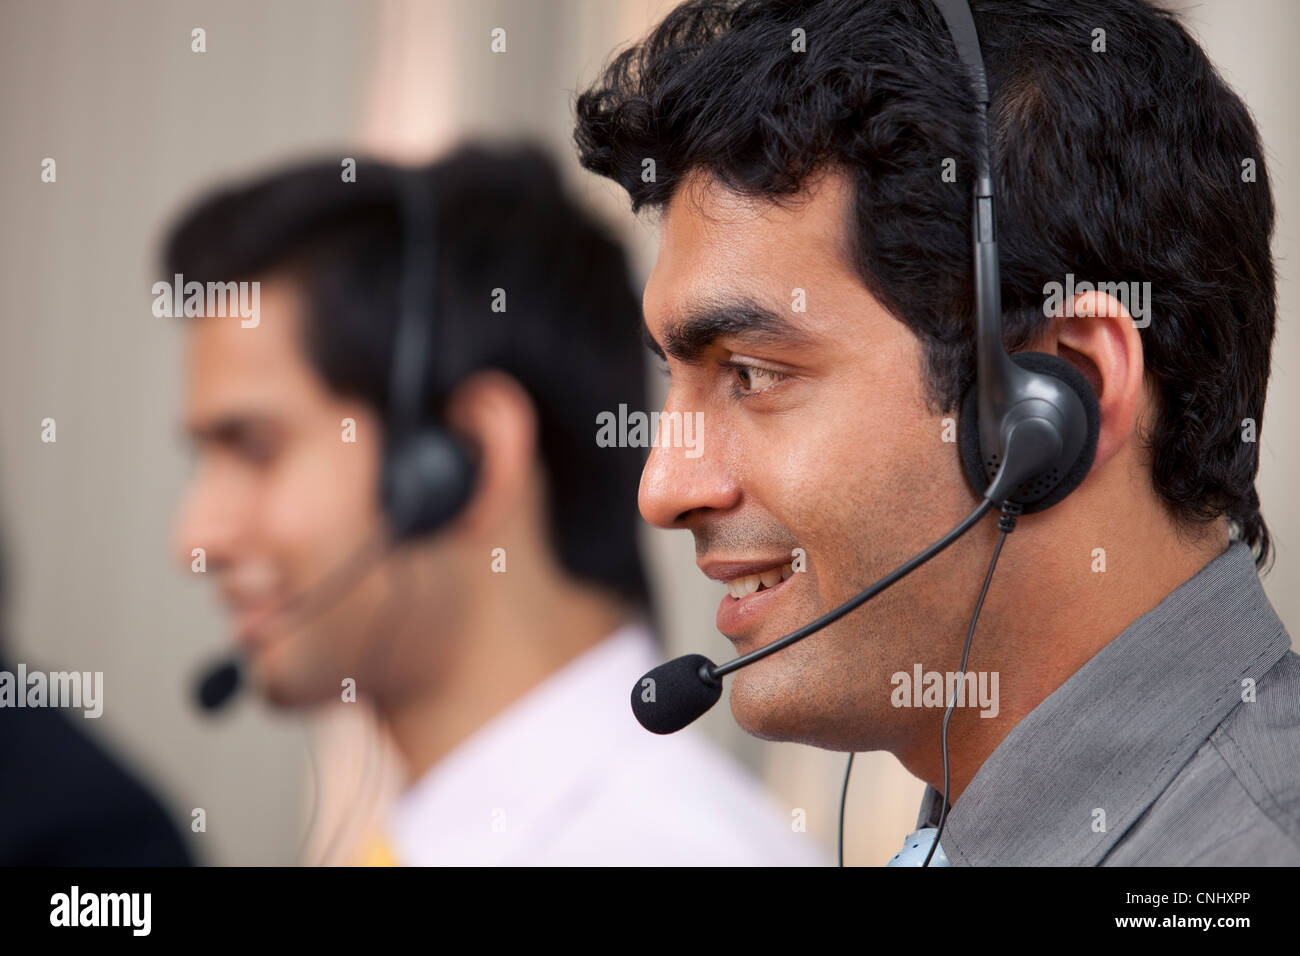 Call center agent smiling - Stock Image